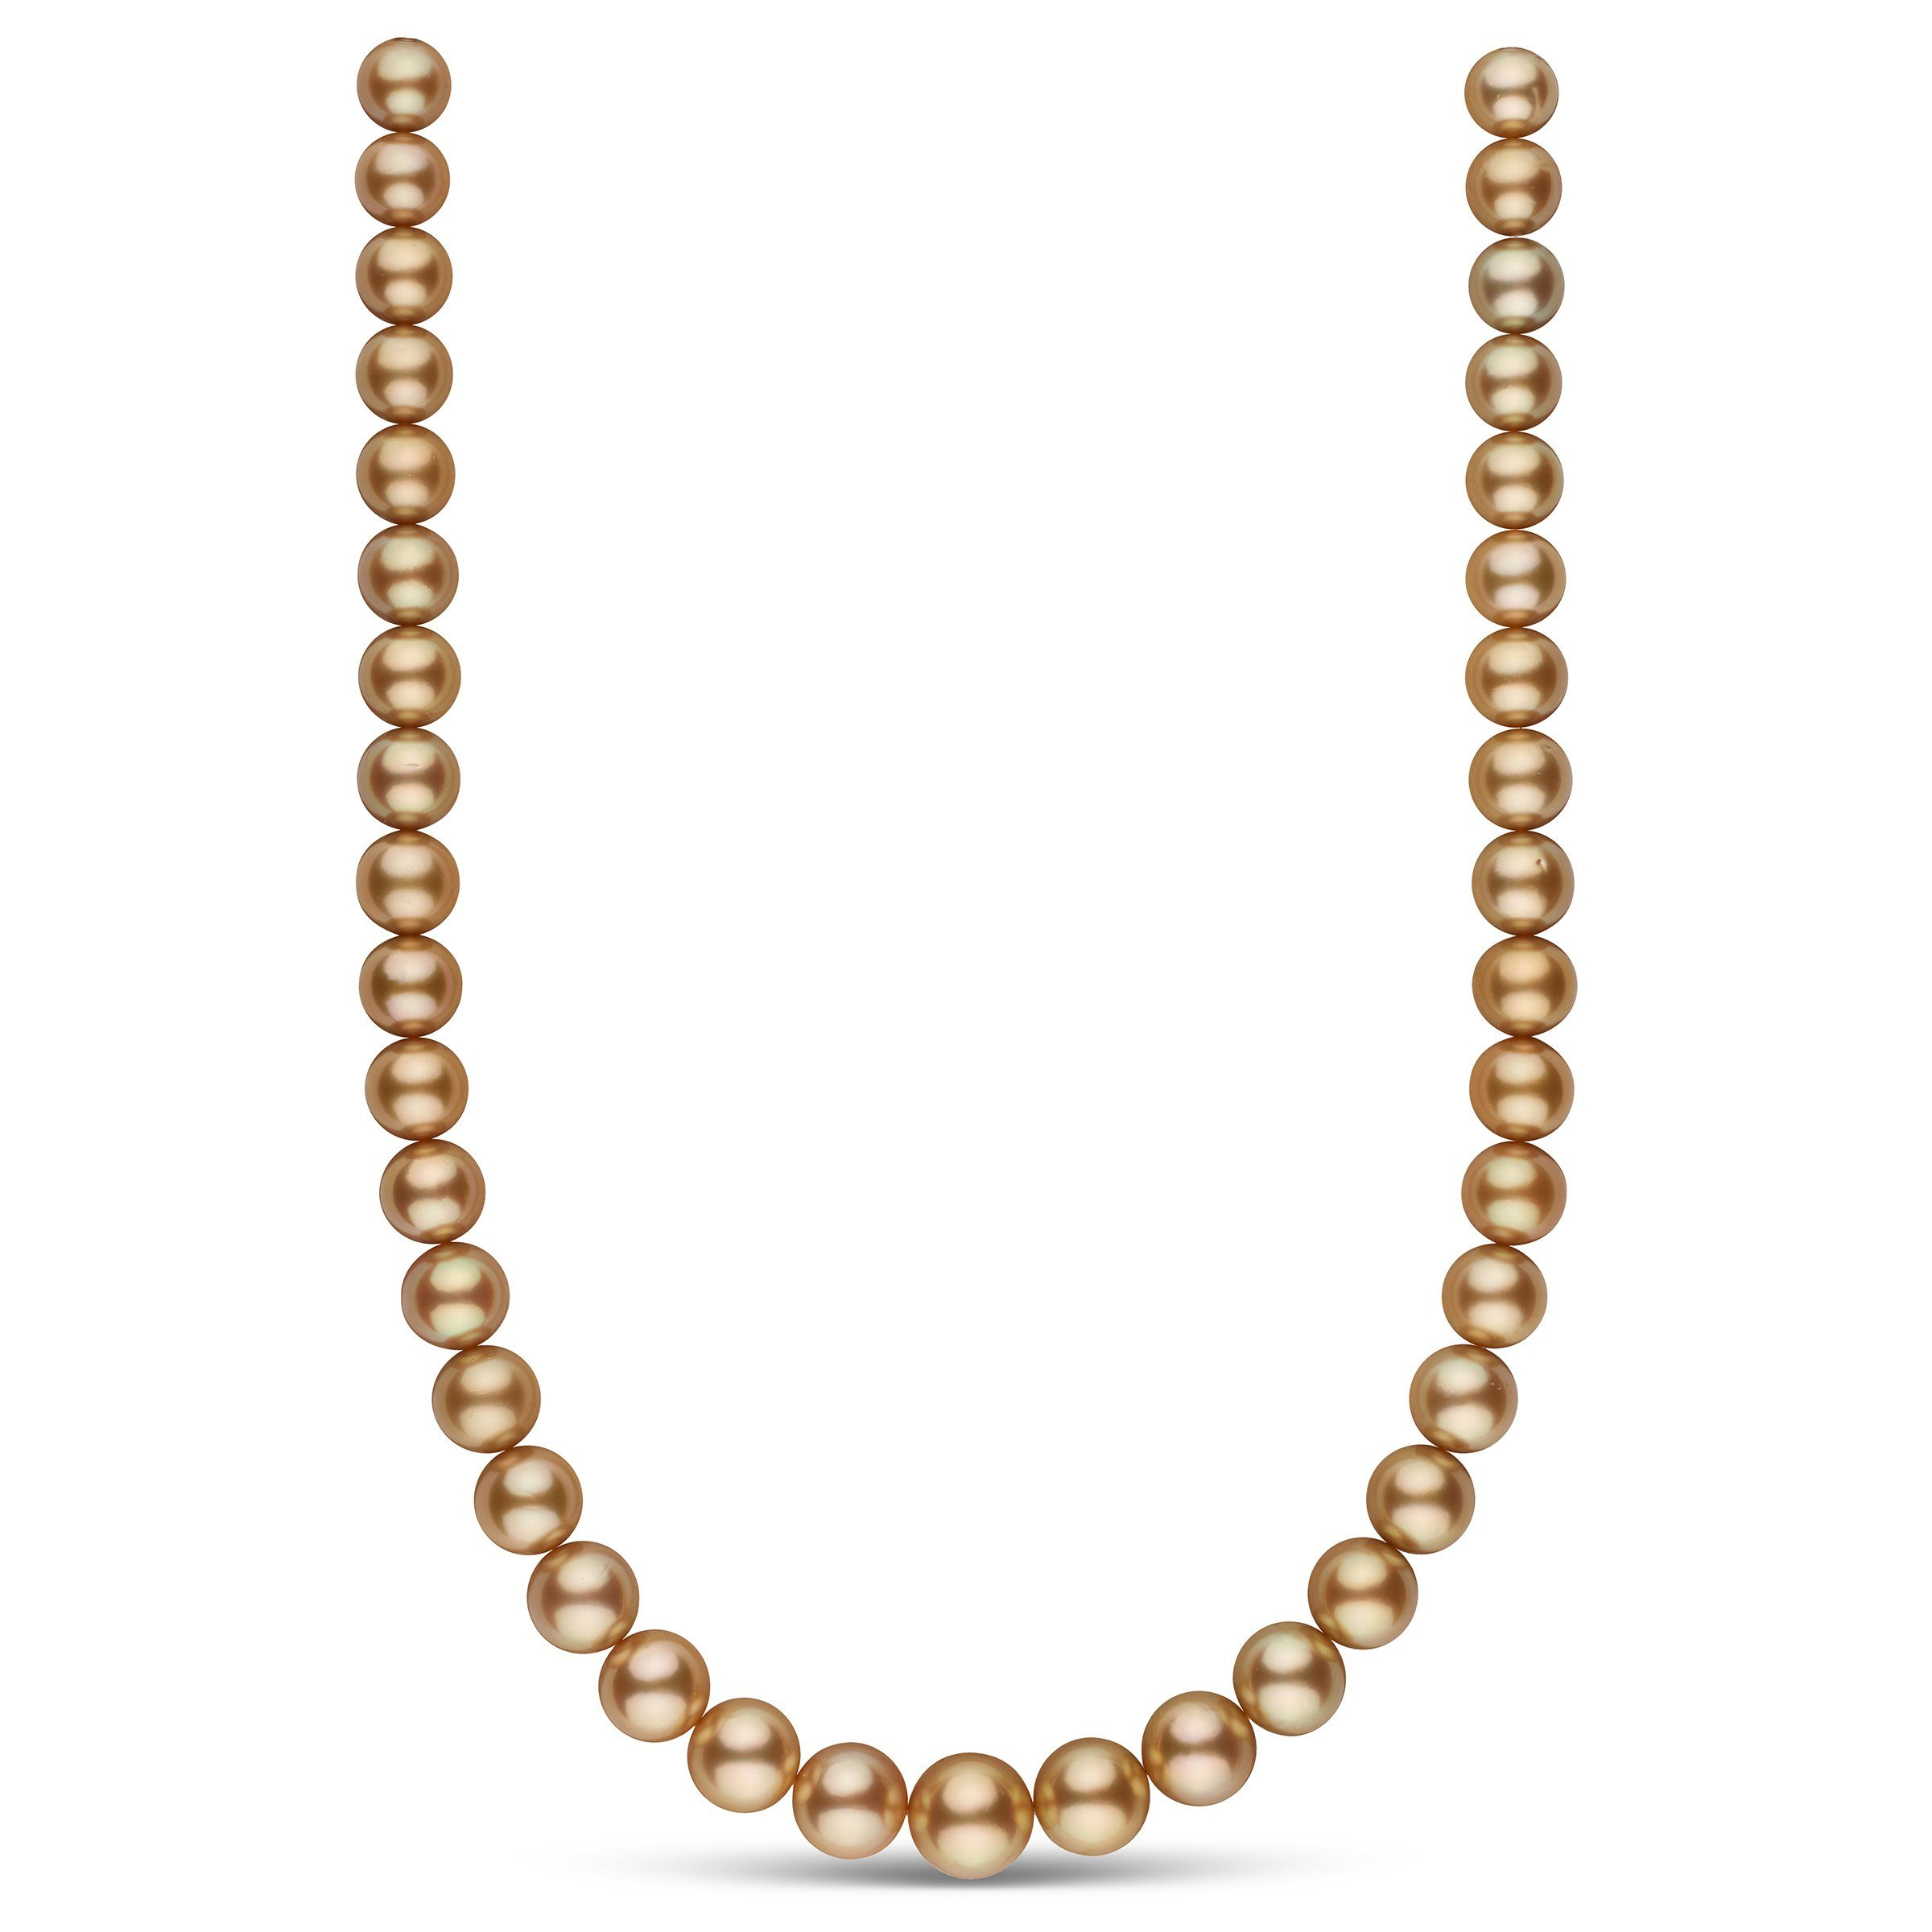 The Sunset Boulevard Golden South Sea Pearl Necklace